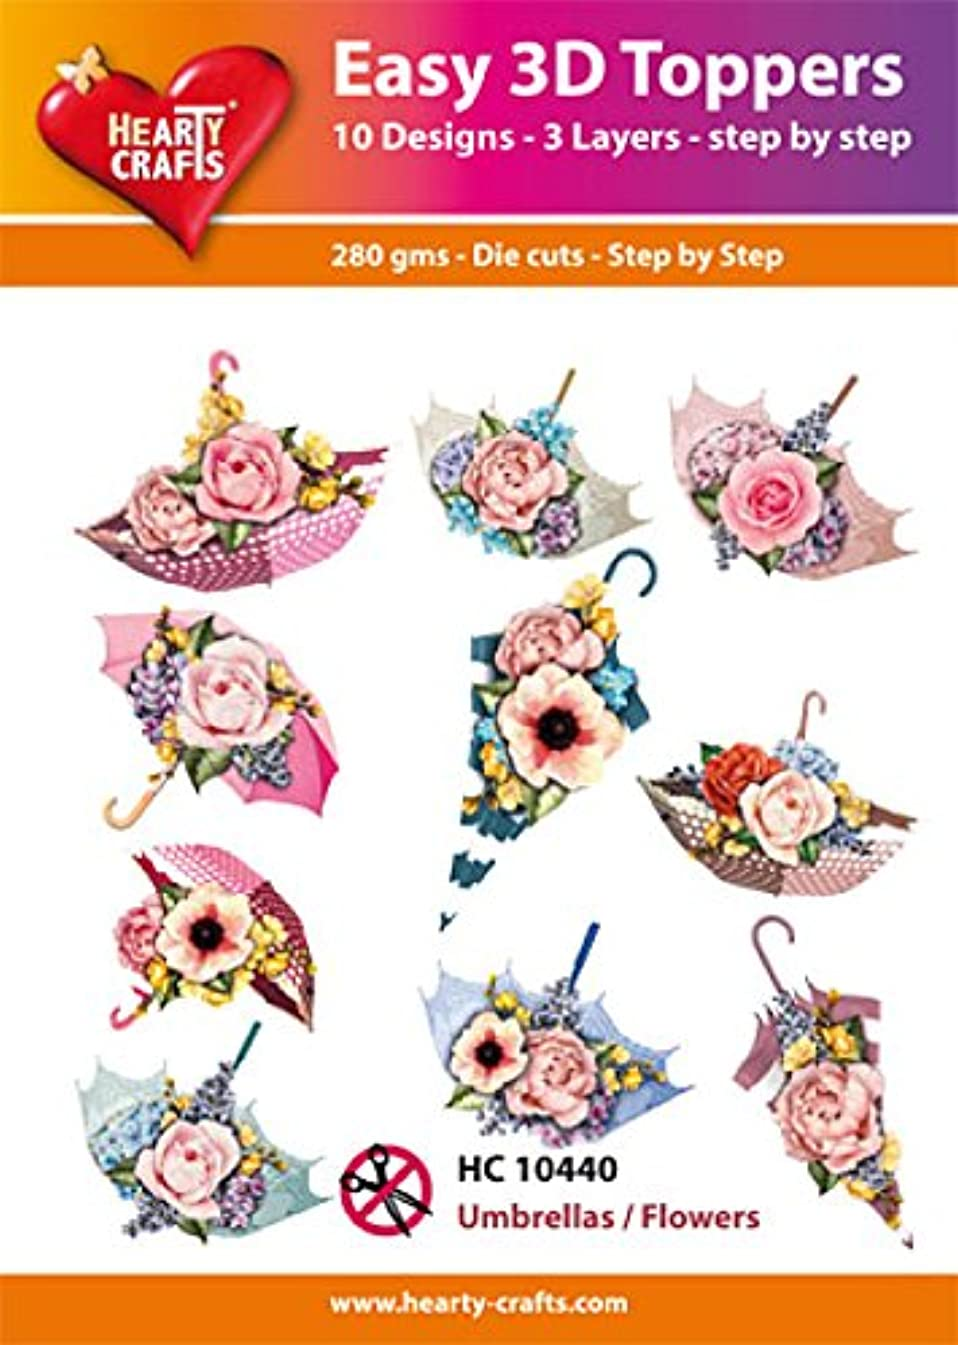 Easy 3D Toppers Umbrellas/Flowers, Paper Multicoloured, 17 x 10 x 1 cm